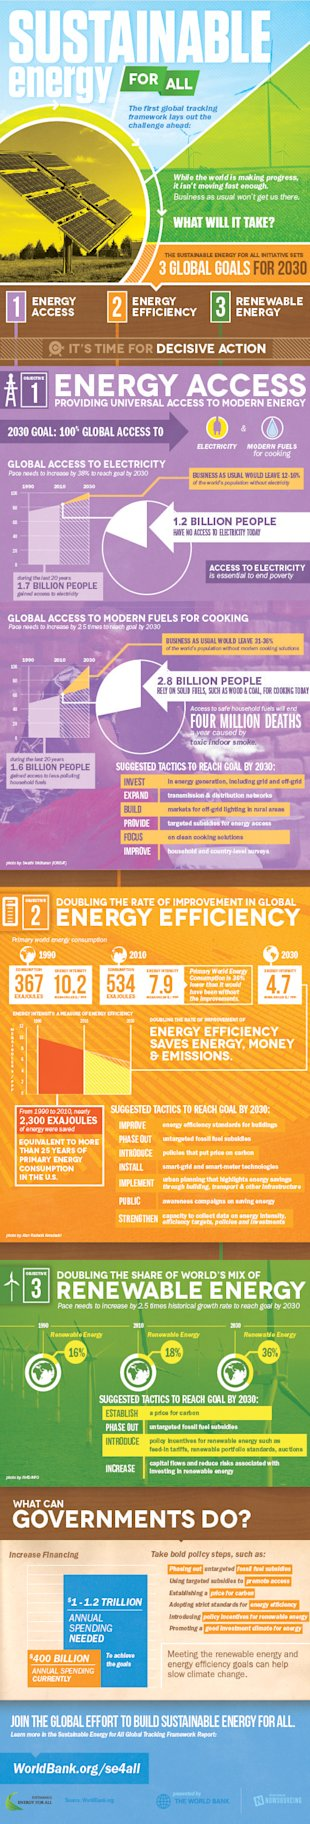 Sustainable Energy for All [Infographic] image World Bank